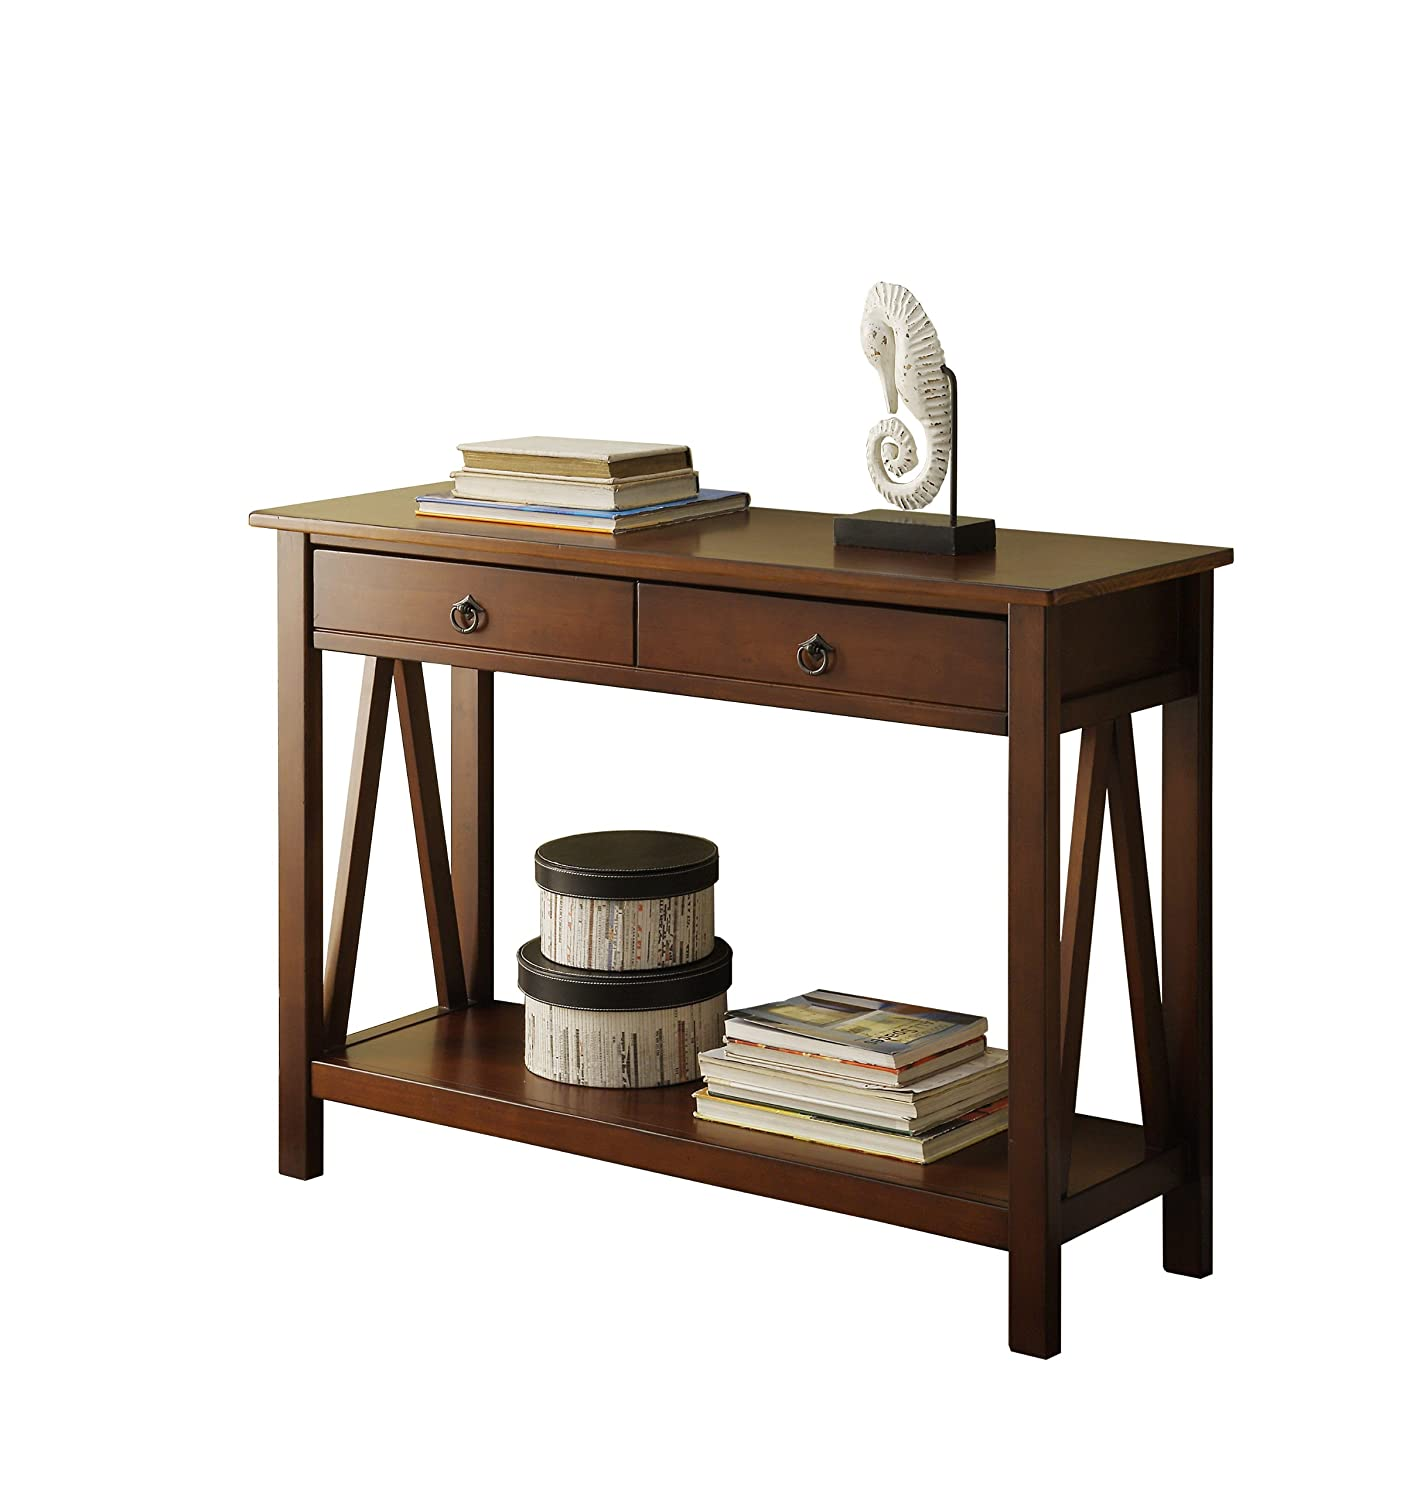 Linon Home Dcor 86152ATOB 01 KD U Console Table 4201 W X 1398 D 3071 H Antique Tobacco Amazonca Kitchen